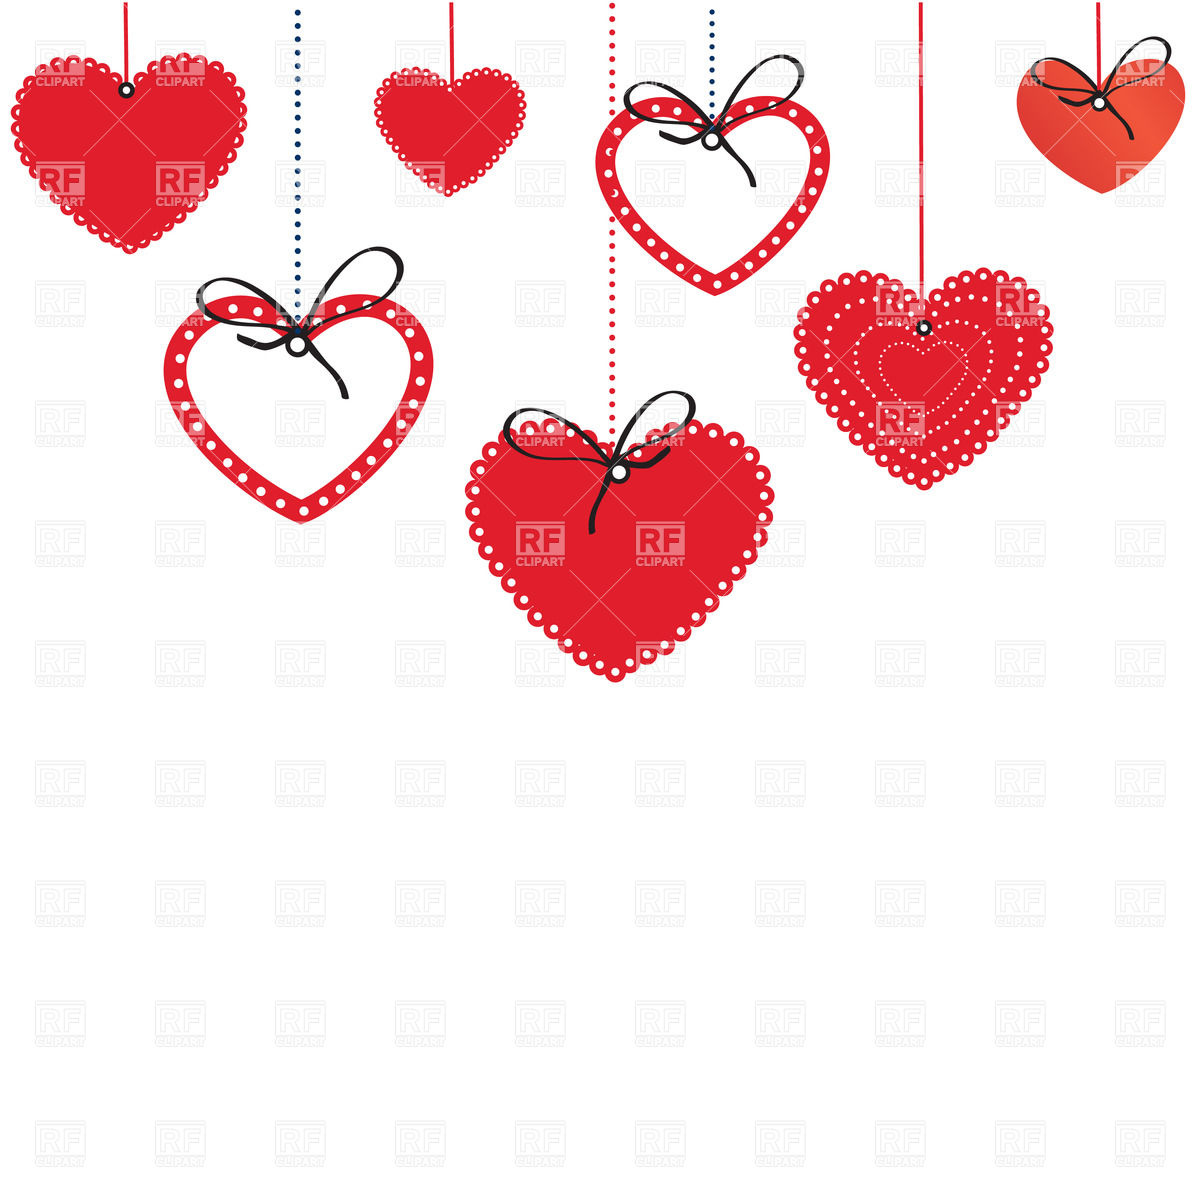 Ornate hearts hanging down and place for text Vector Image #23678.